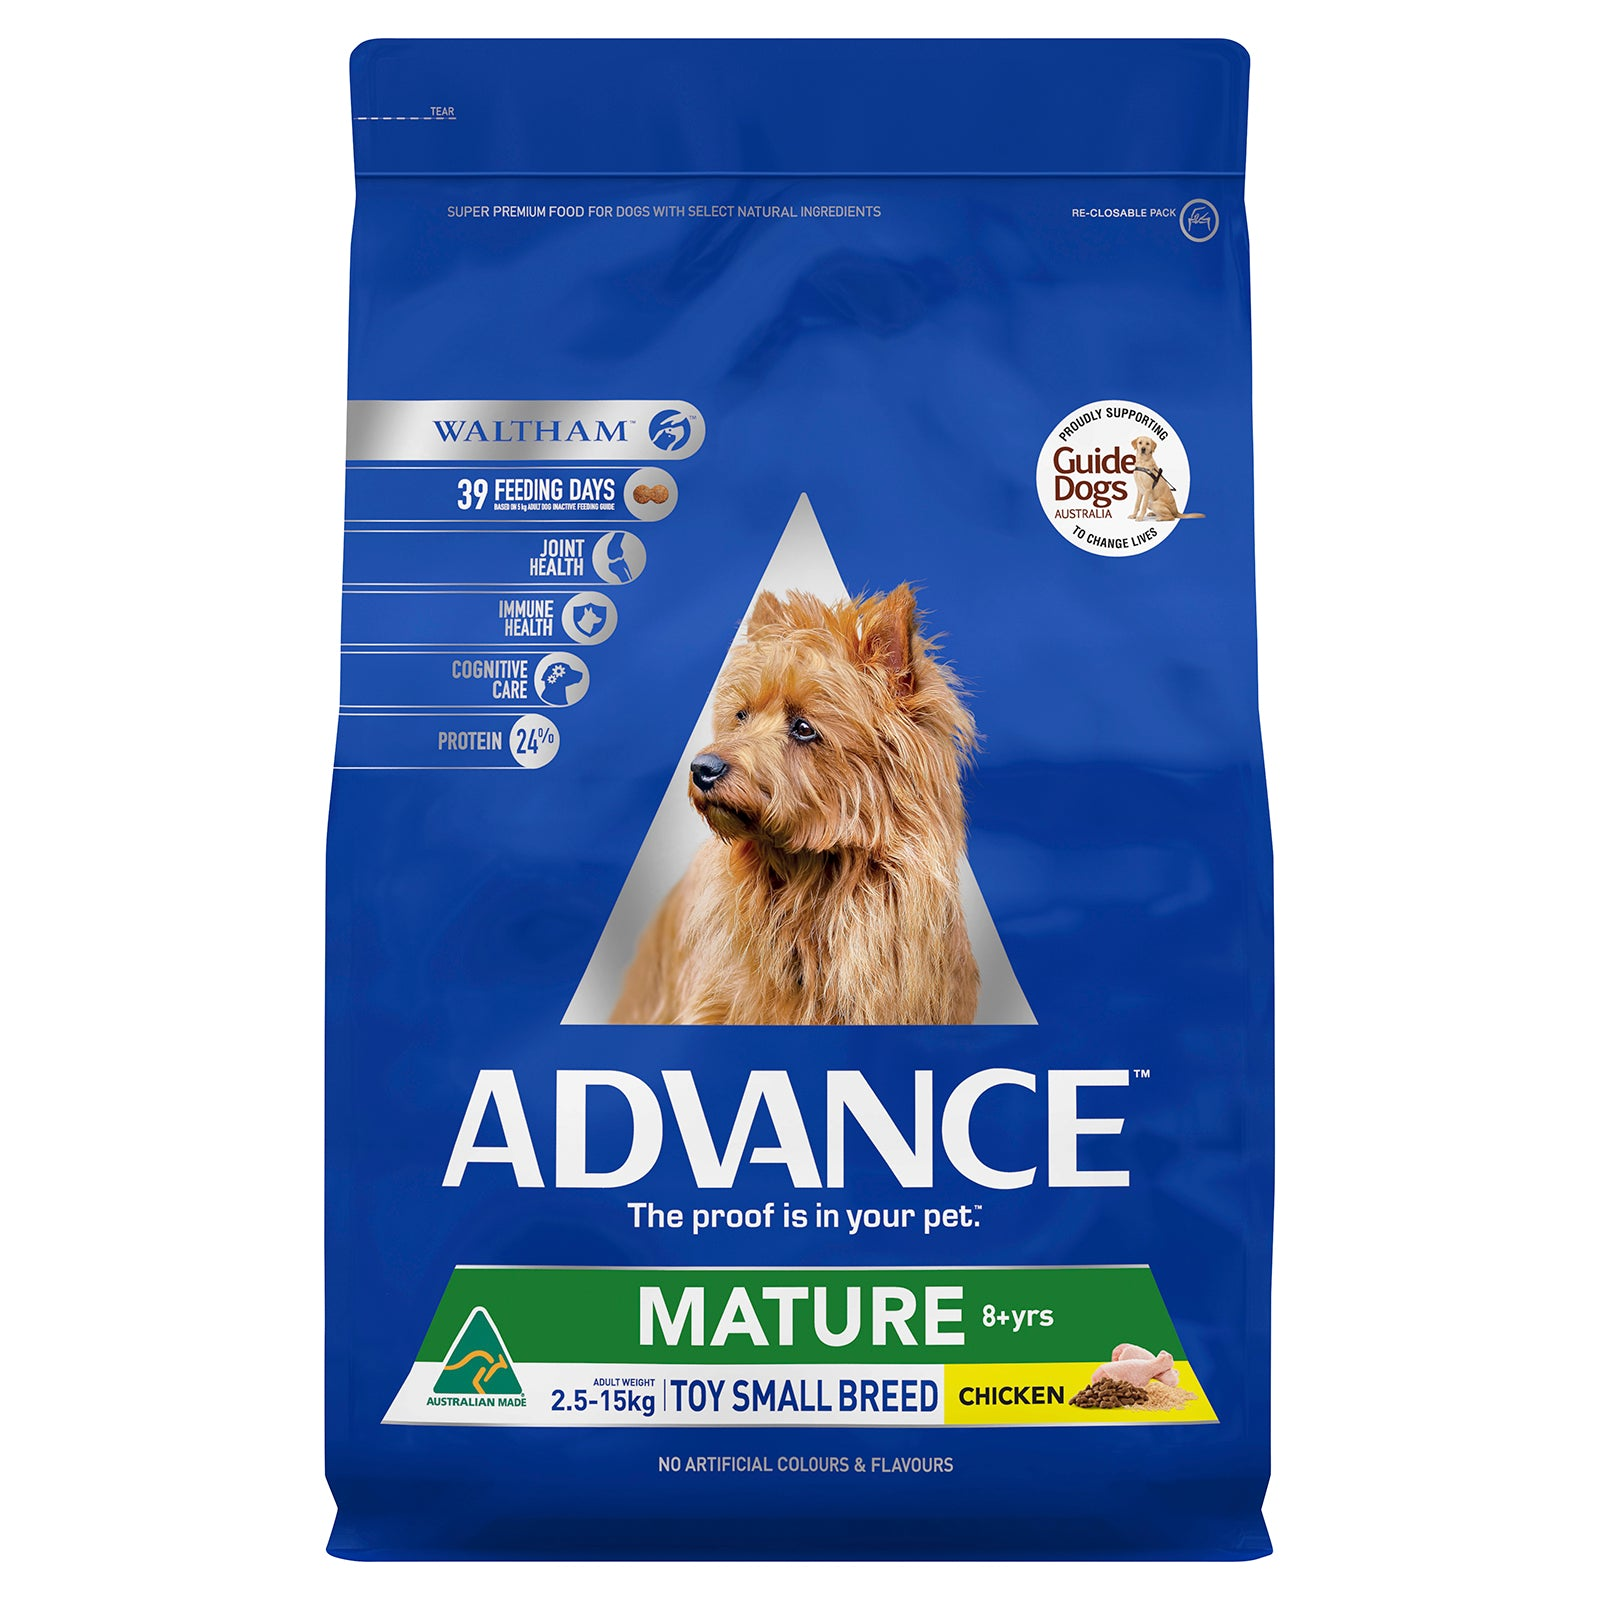 Advance Dog Food Mature Toy Small Breed Chicken